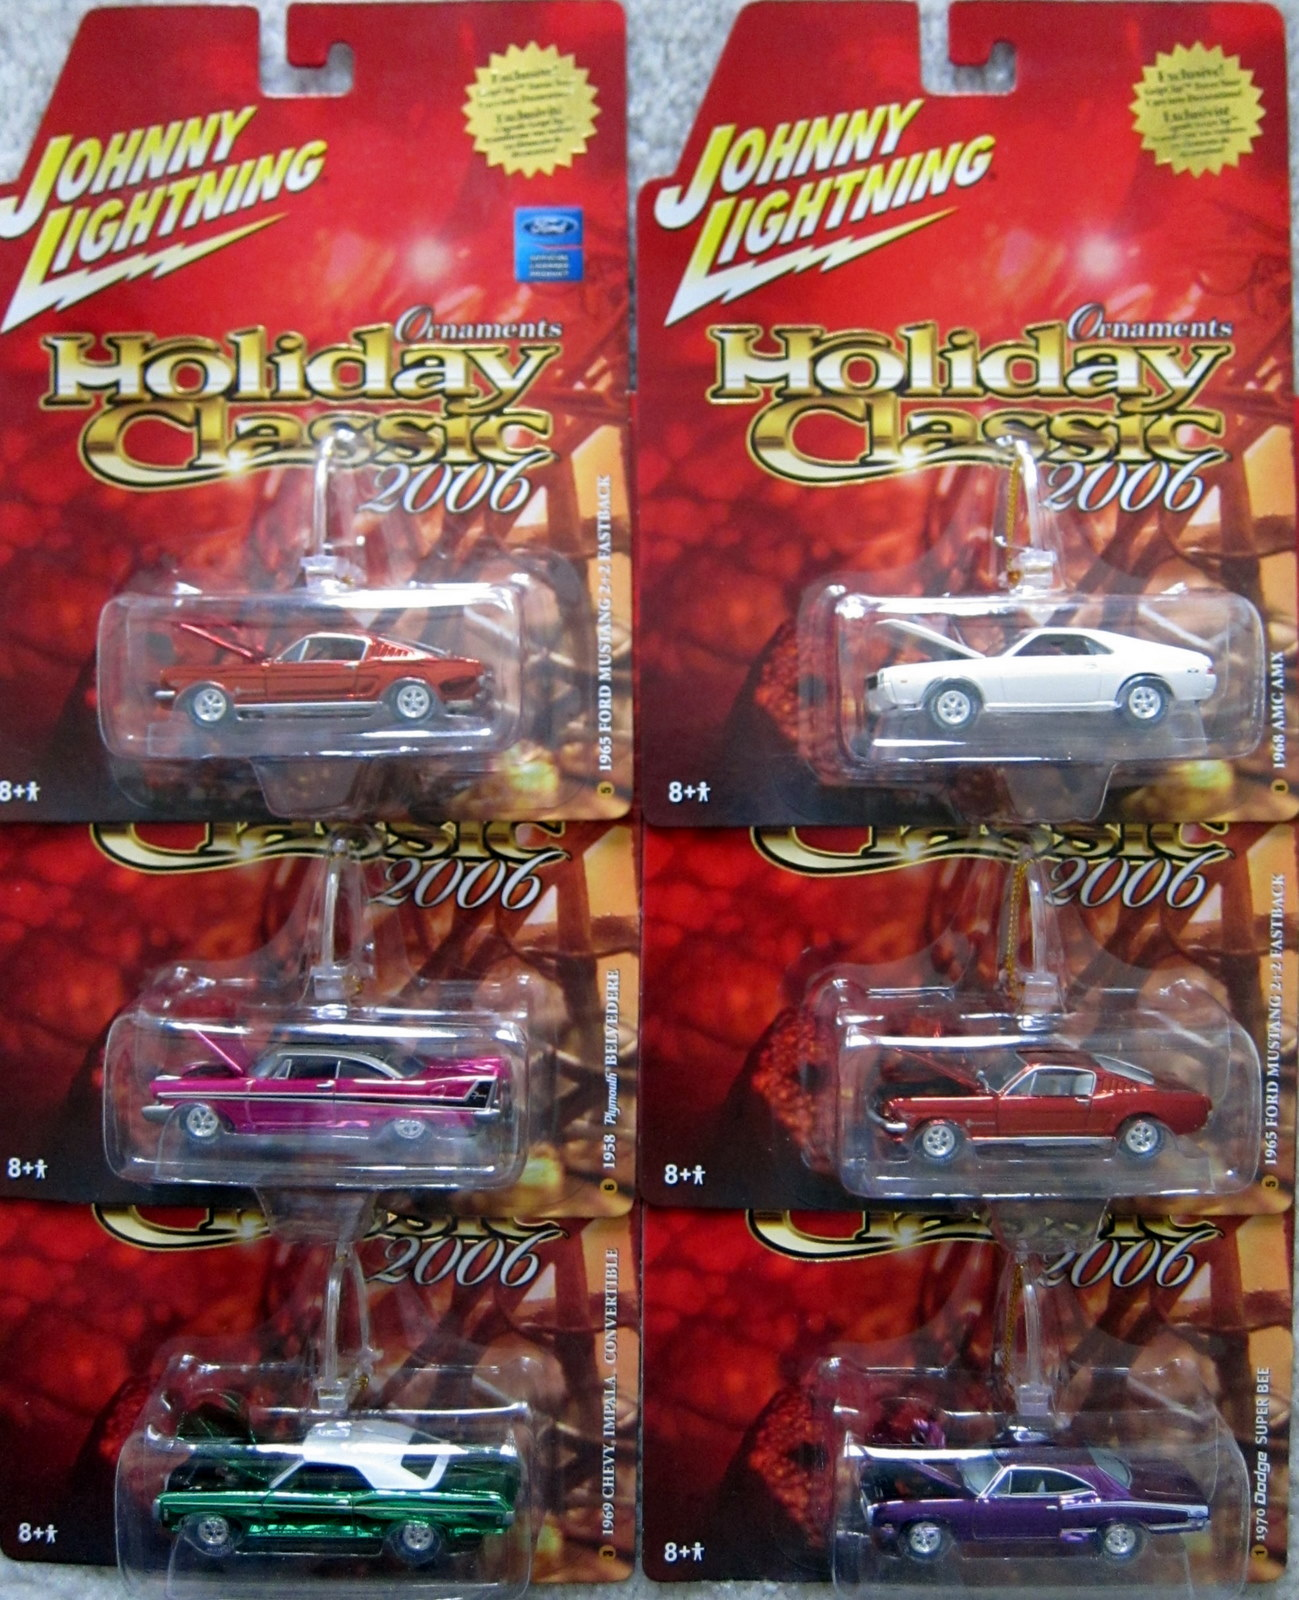 Mytoycars Johnny Lightning Holiday Classic Part Two 1968 Dodge Dart Colors The 12 Car Set All Had Chrome Finished In Various And Instead Of Plastic Wheels They Rubber Tires